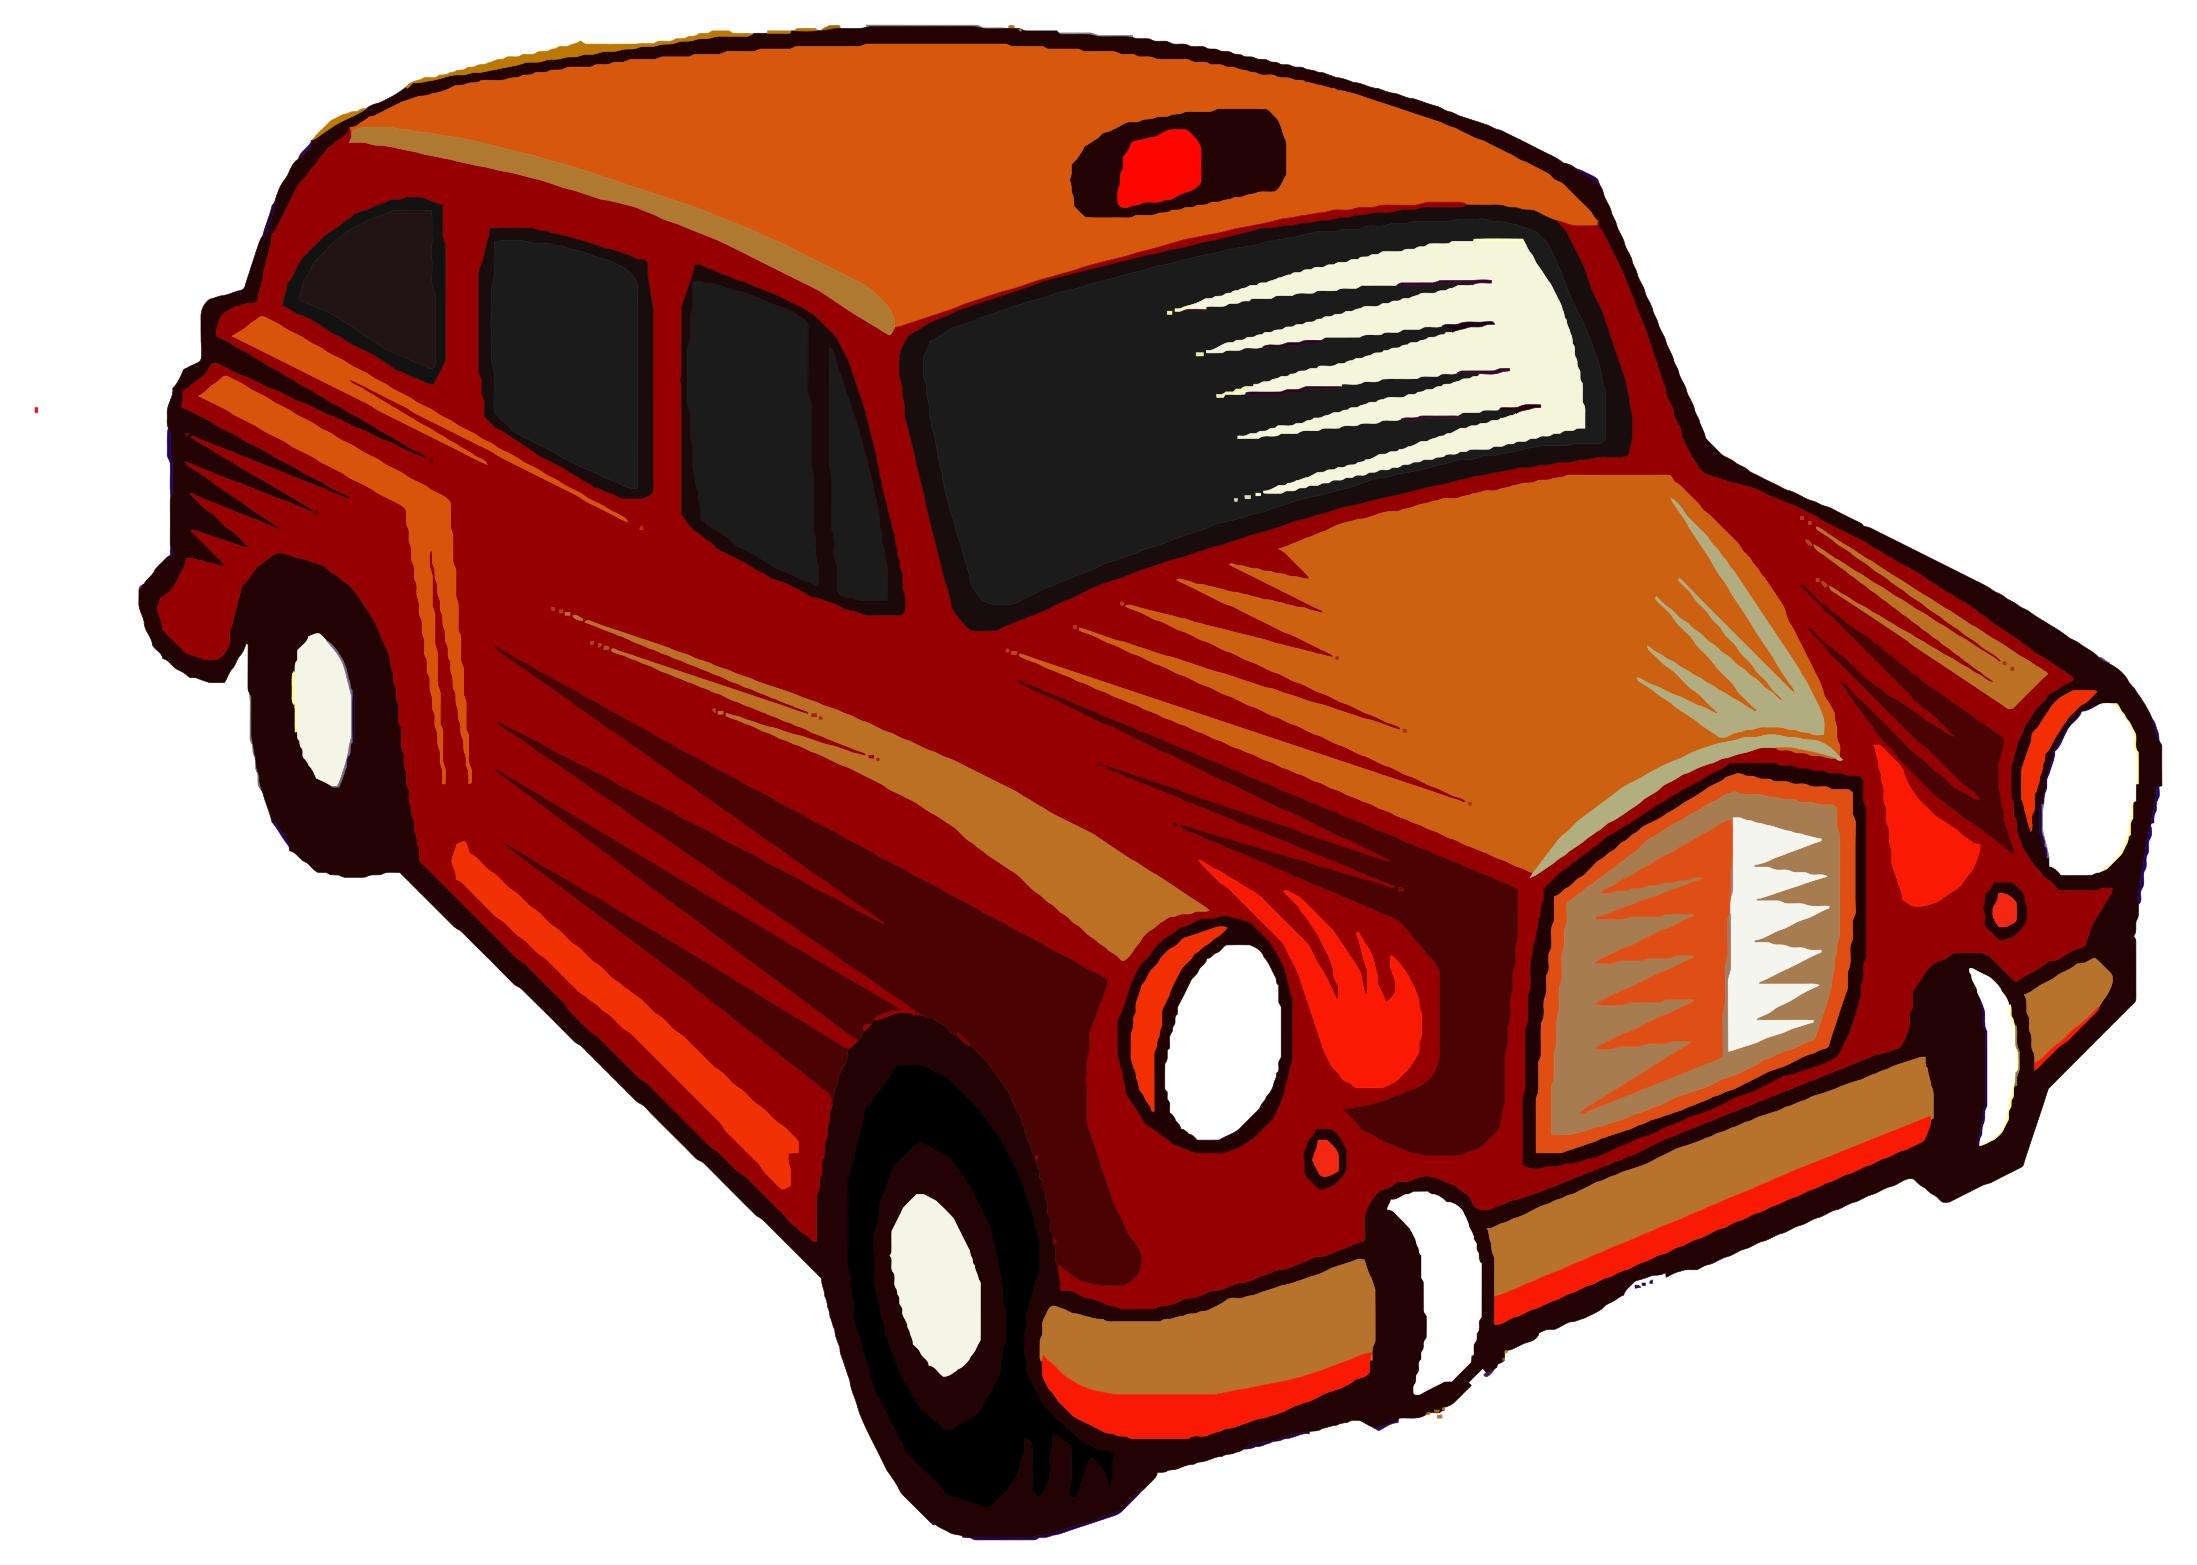 2197x1565 Red Taxi Cab Clipart